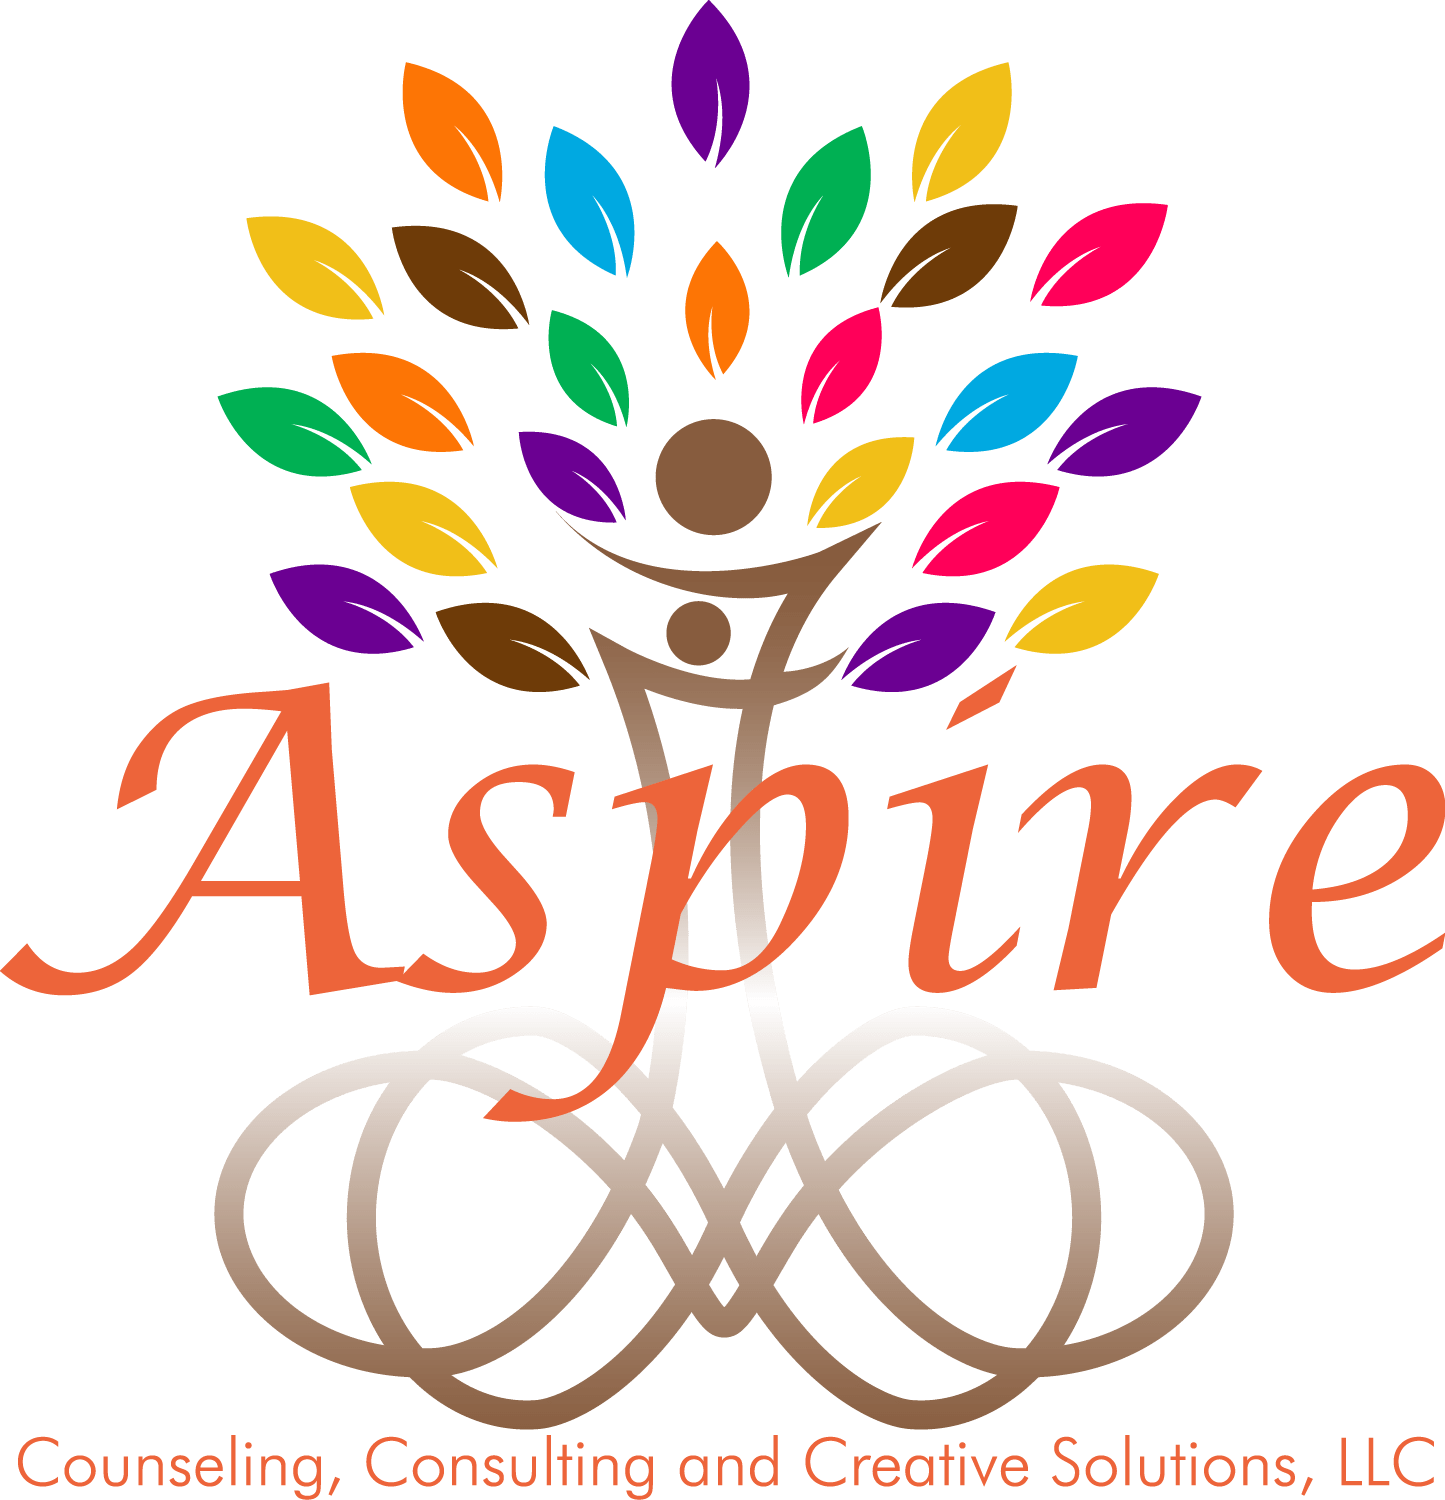 Aspire Counseling, Consulting and Creative Solutions, LLC., Counselor/Therapist